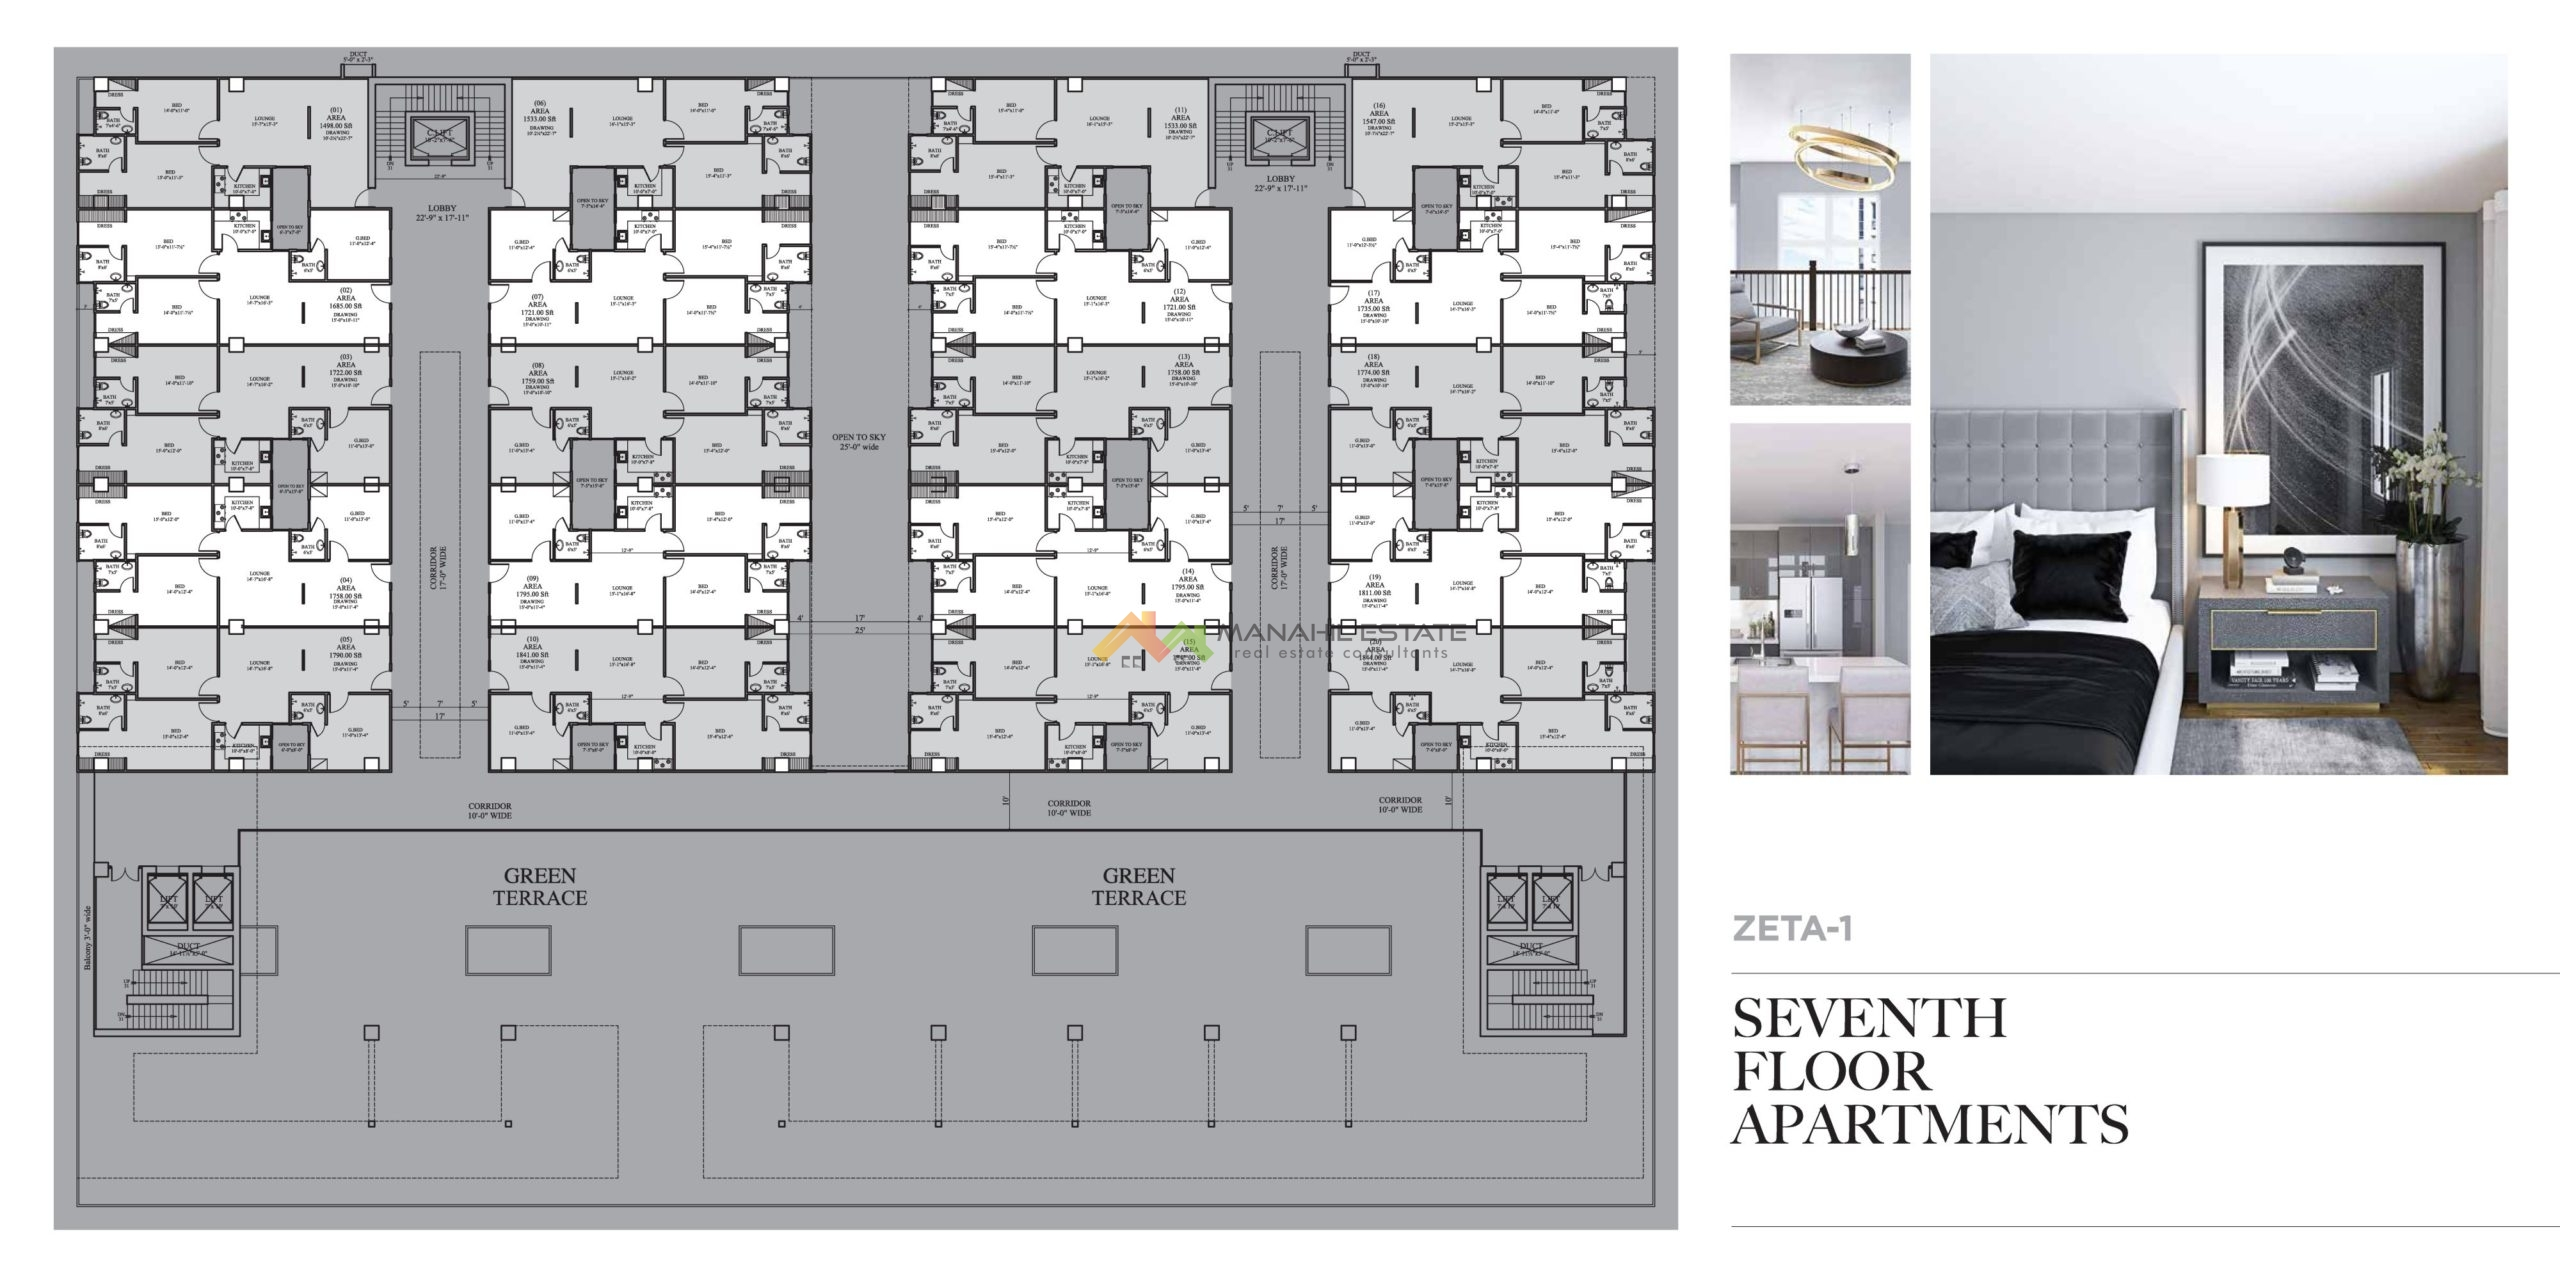 Seventh Floor Plan Apartments